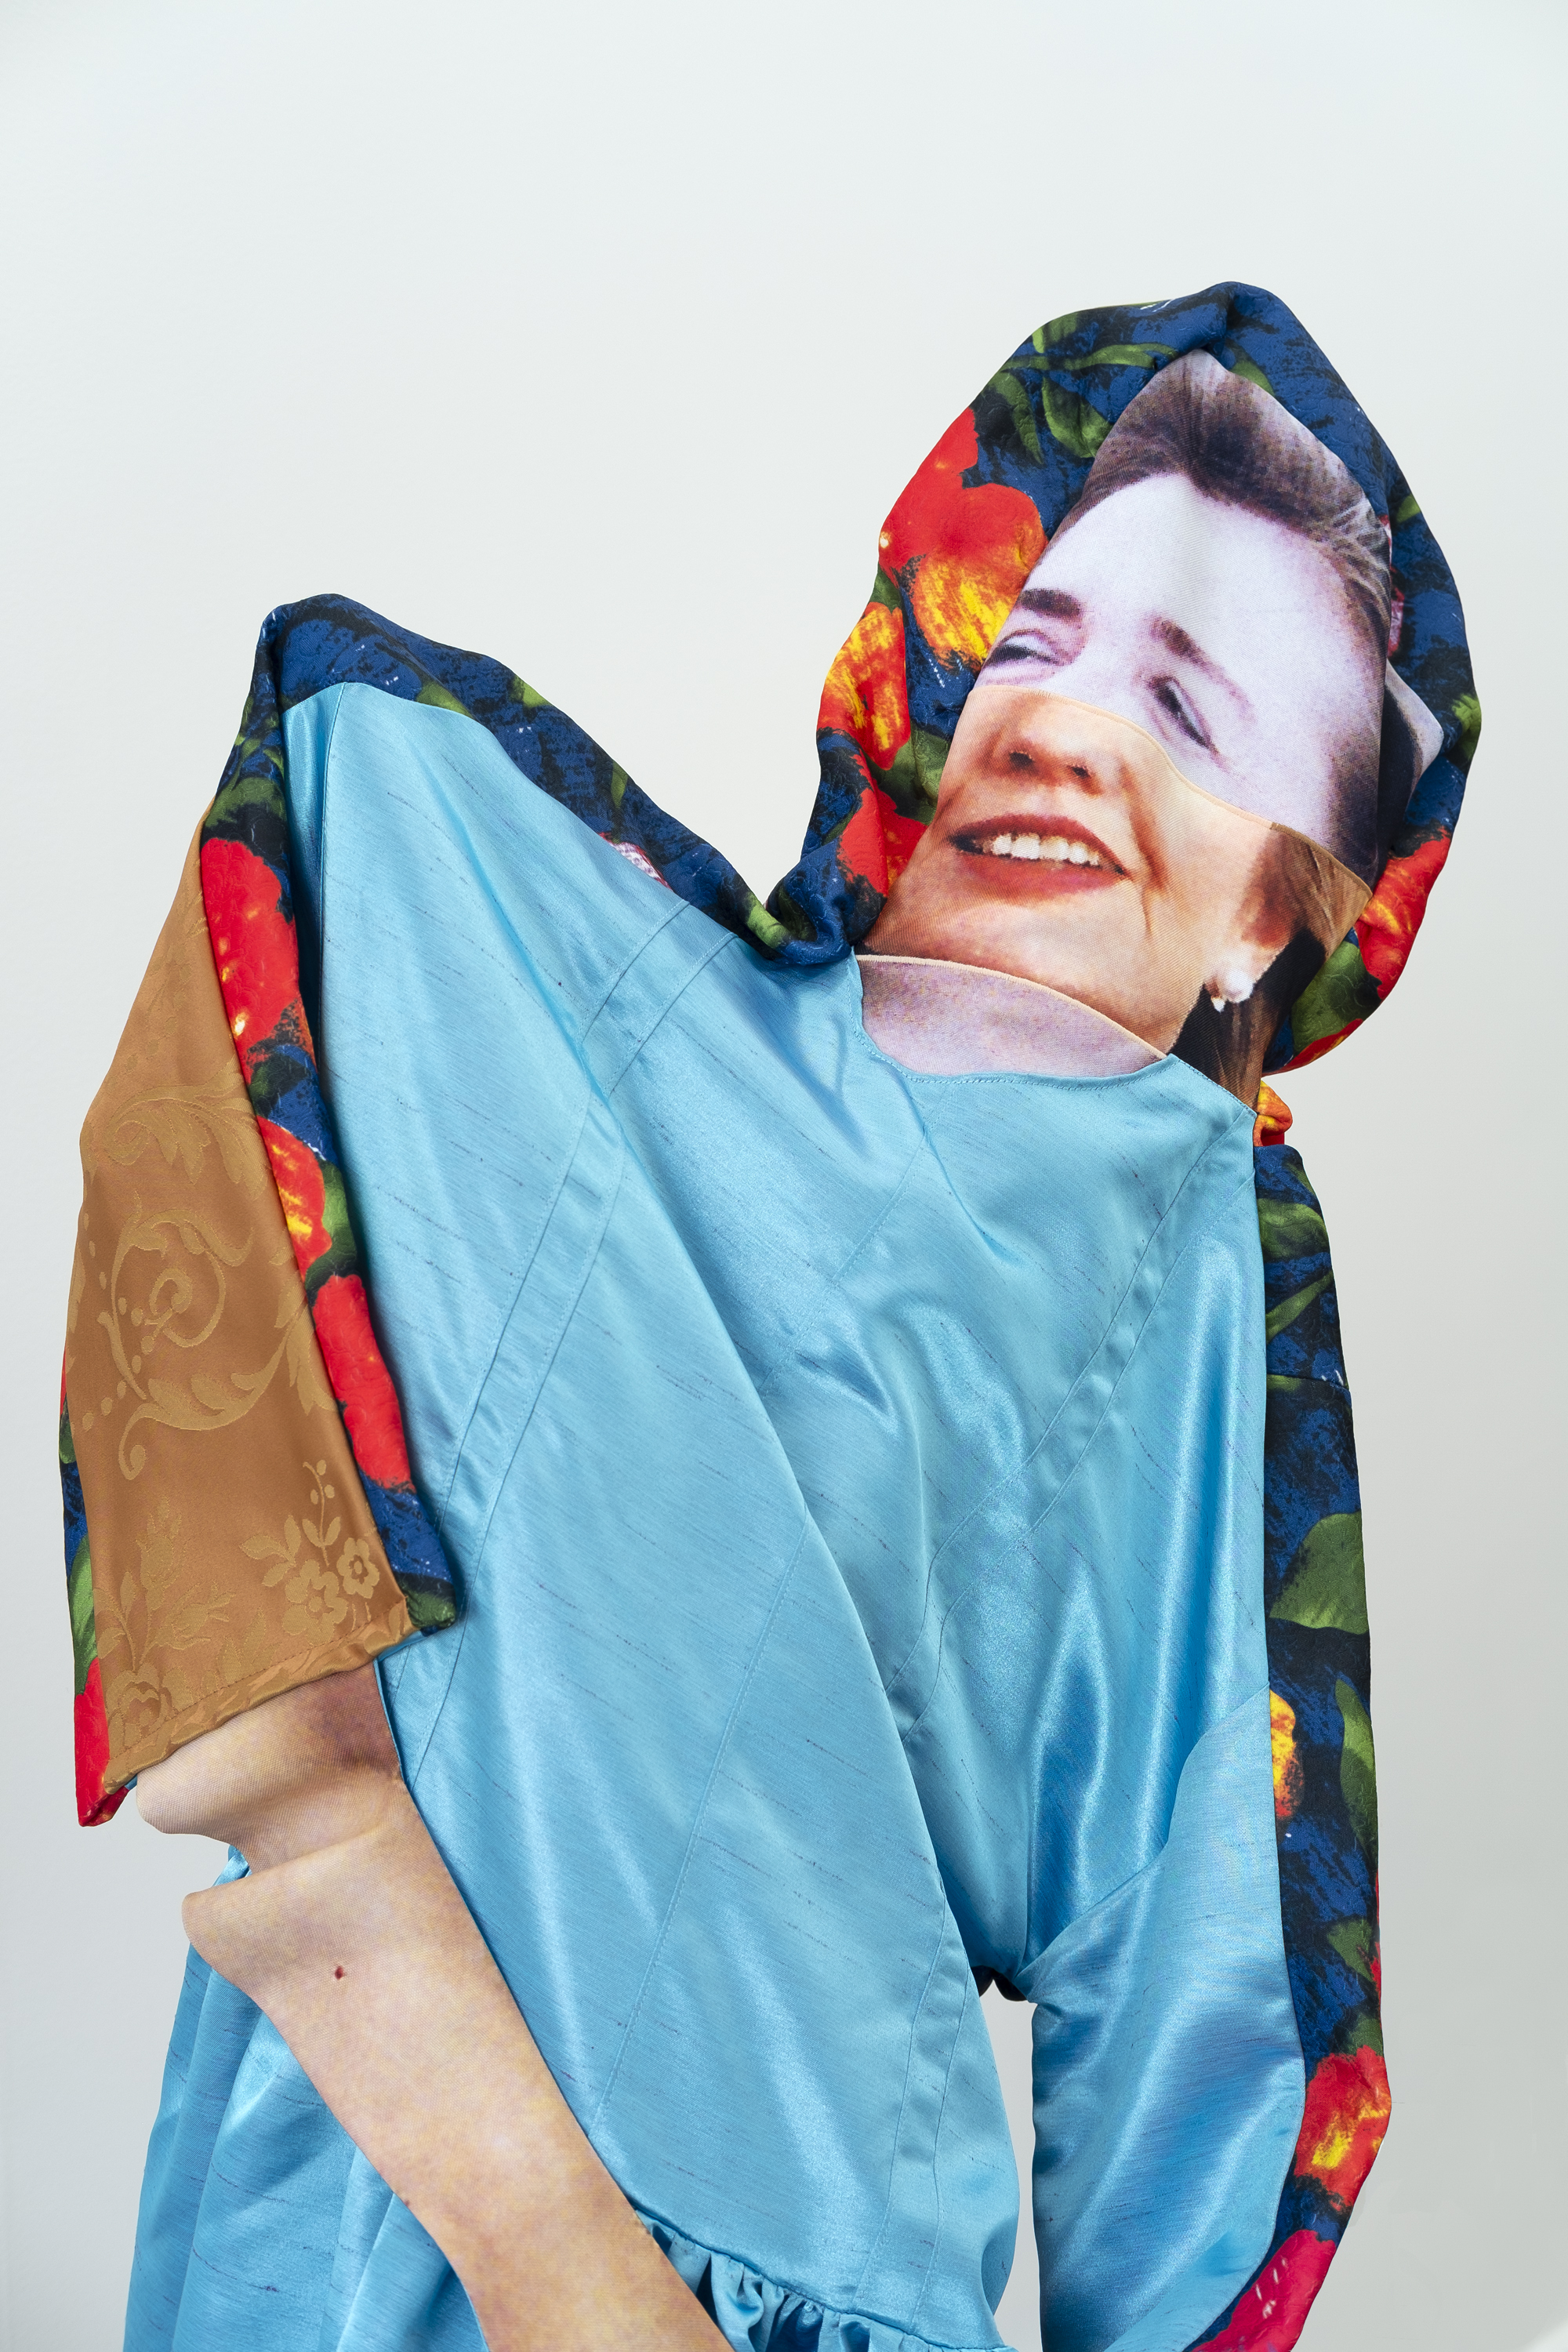 Bean Gilsdorf,  HC  (detail), 2018, Polyester, wood, paint, approx. 61 x 36 x 30 inches